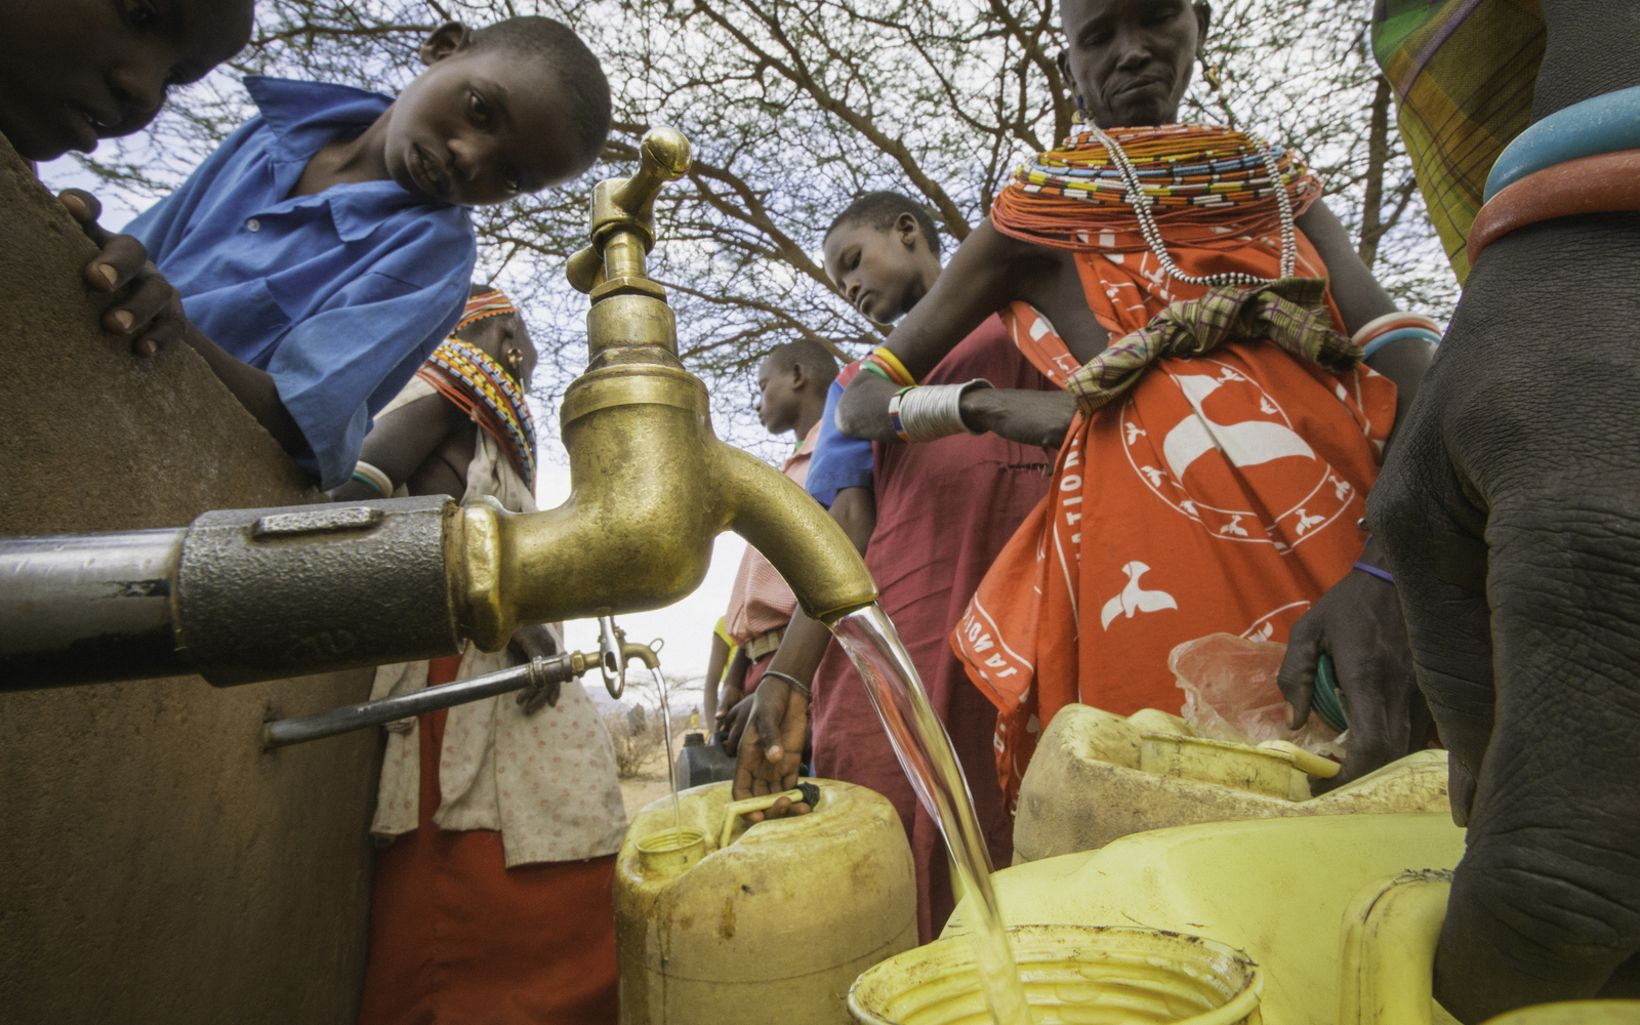 Samburu women collect water from a well built by Northern Rangelands Trust and the Nature Conservancy at the West Gate Conservancy in Northern Kenya.  The Samburu people are pastoralists, whose livelihoods have traditionally been rooted in semi-nomadic herding across the rangelands of northern Kenya, but pressures increase on natural resources, grazing cattle has become a volatile livelihood as unpredictable drought and competition with protected wildlife for grazing becomes more frequent.